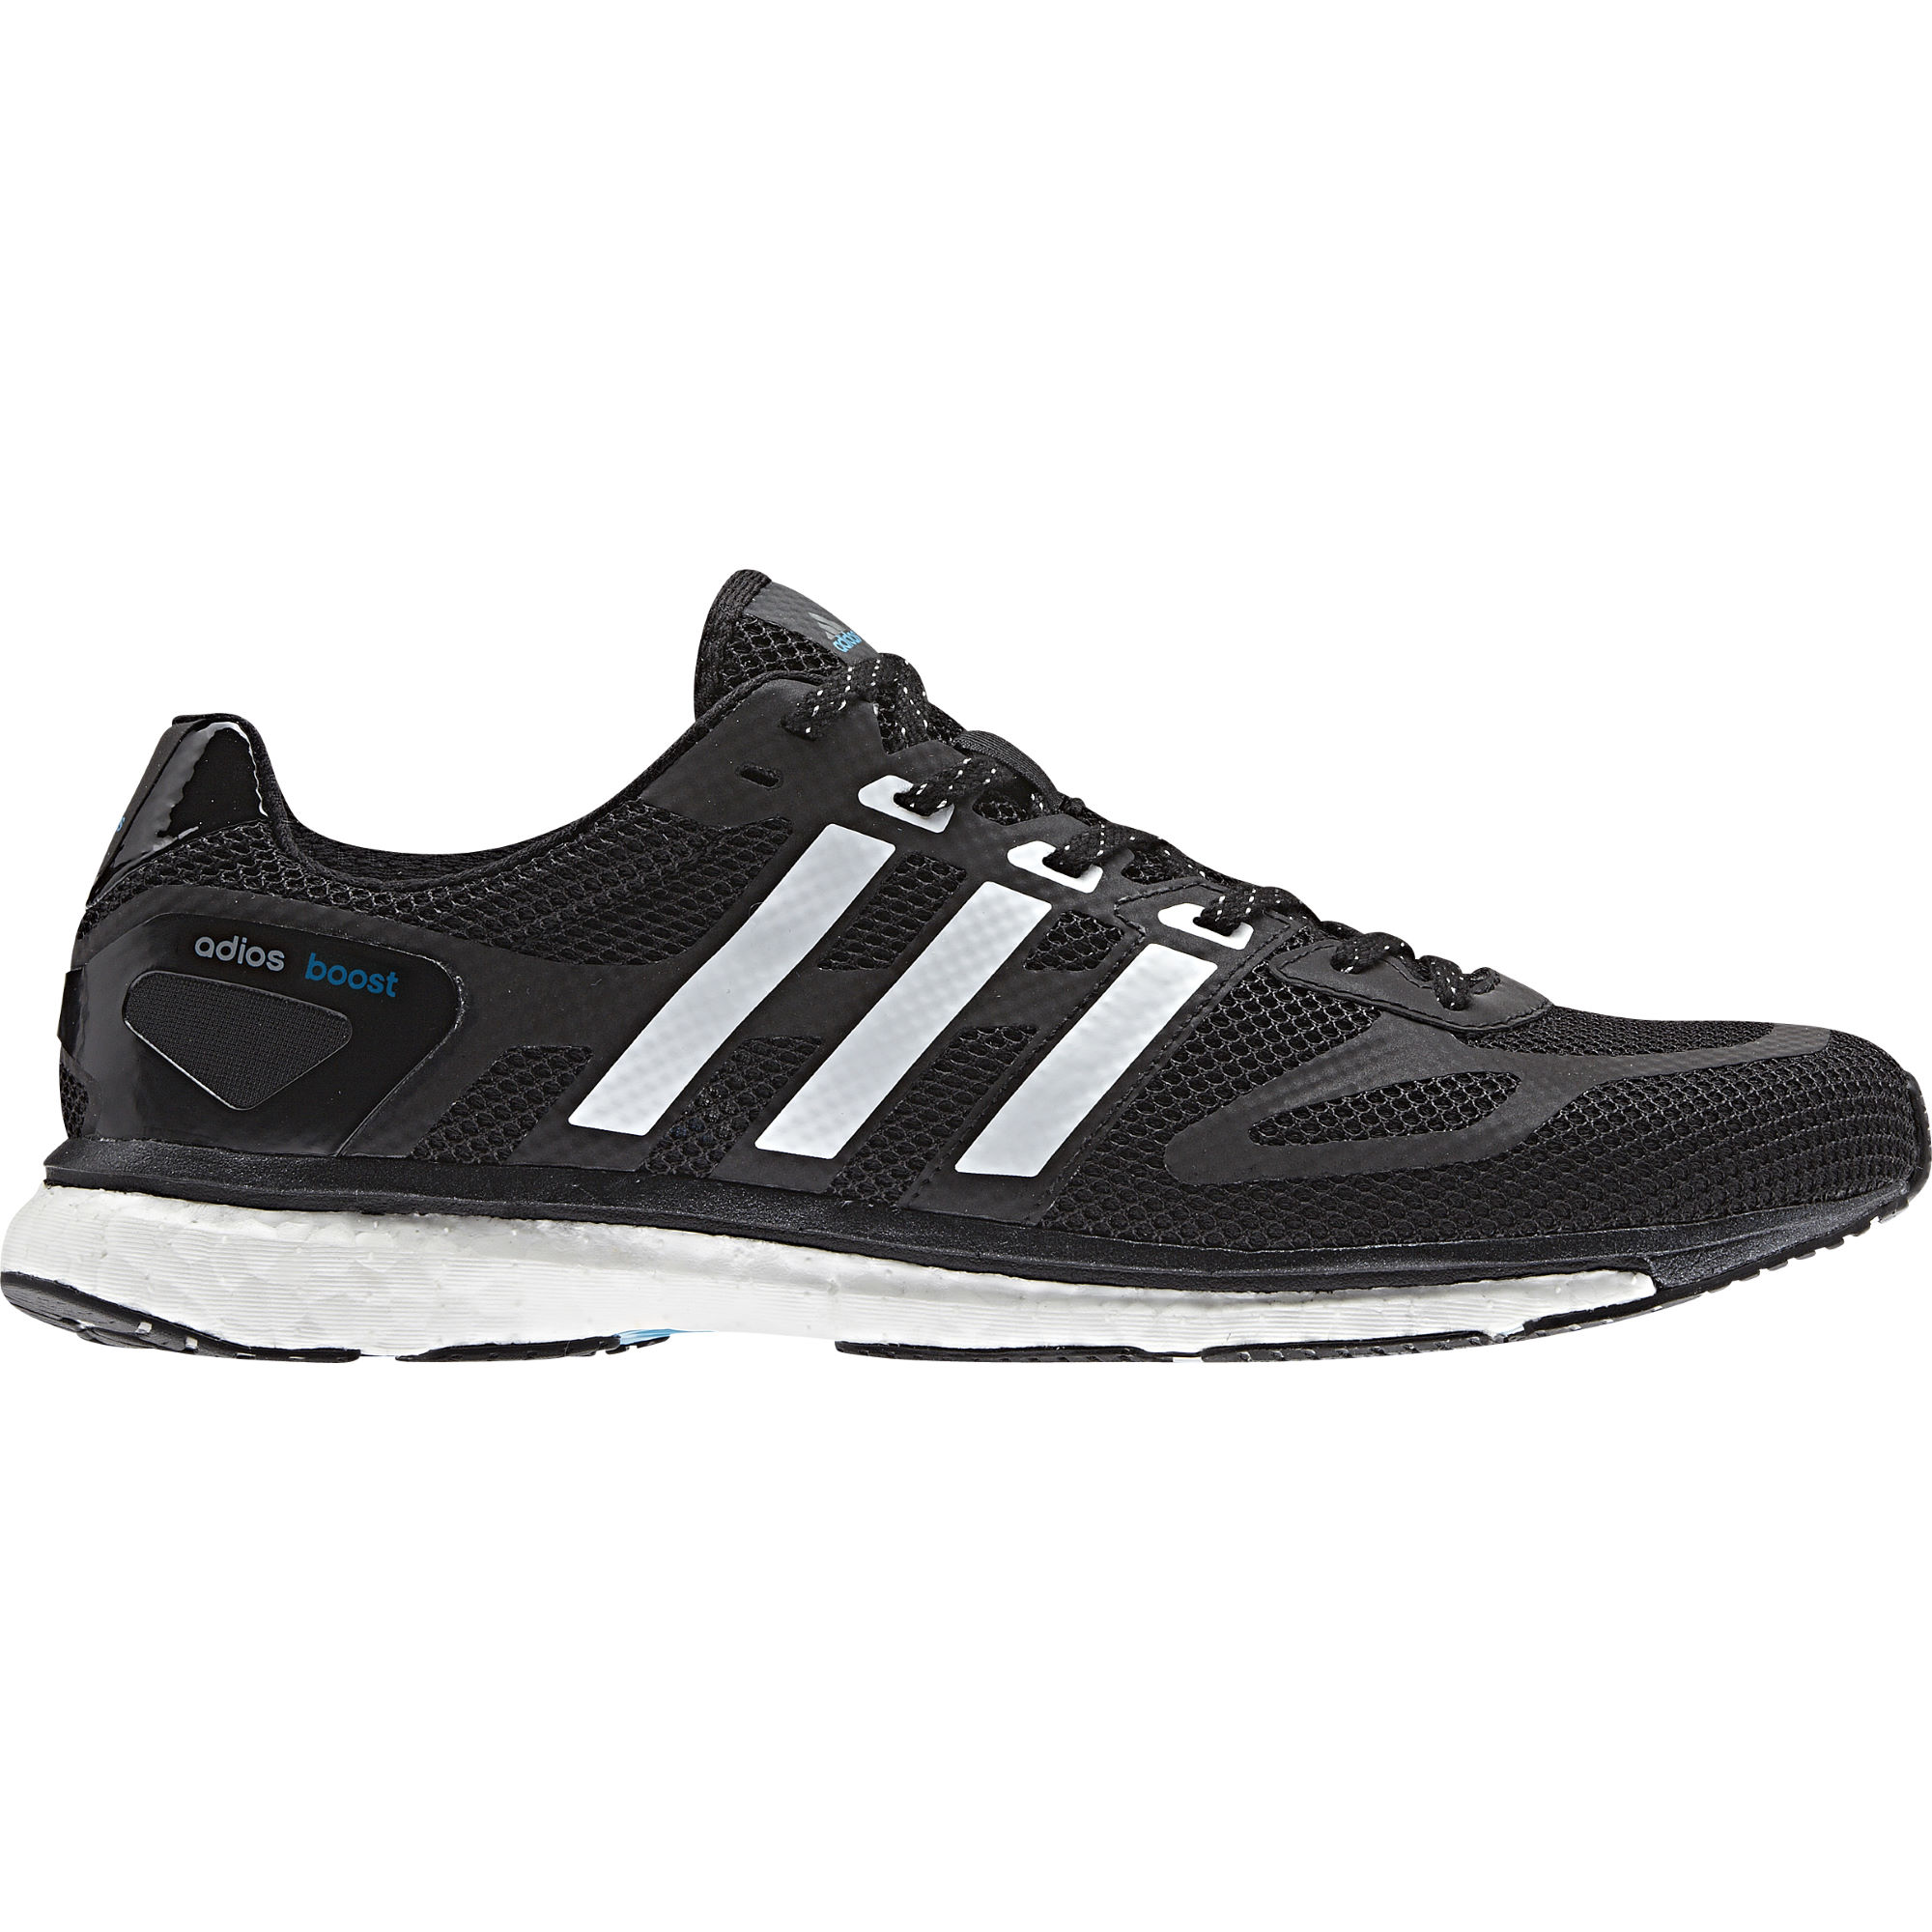 wiggle adidas adizero adios boost shoes ss14 racing running shoes. Black Bedroom Furniture Sets. Home Design Ideas